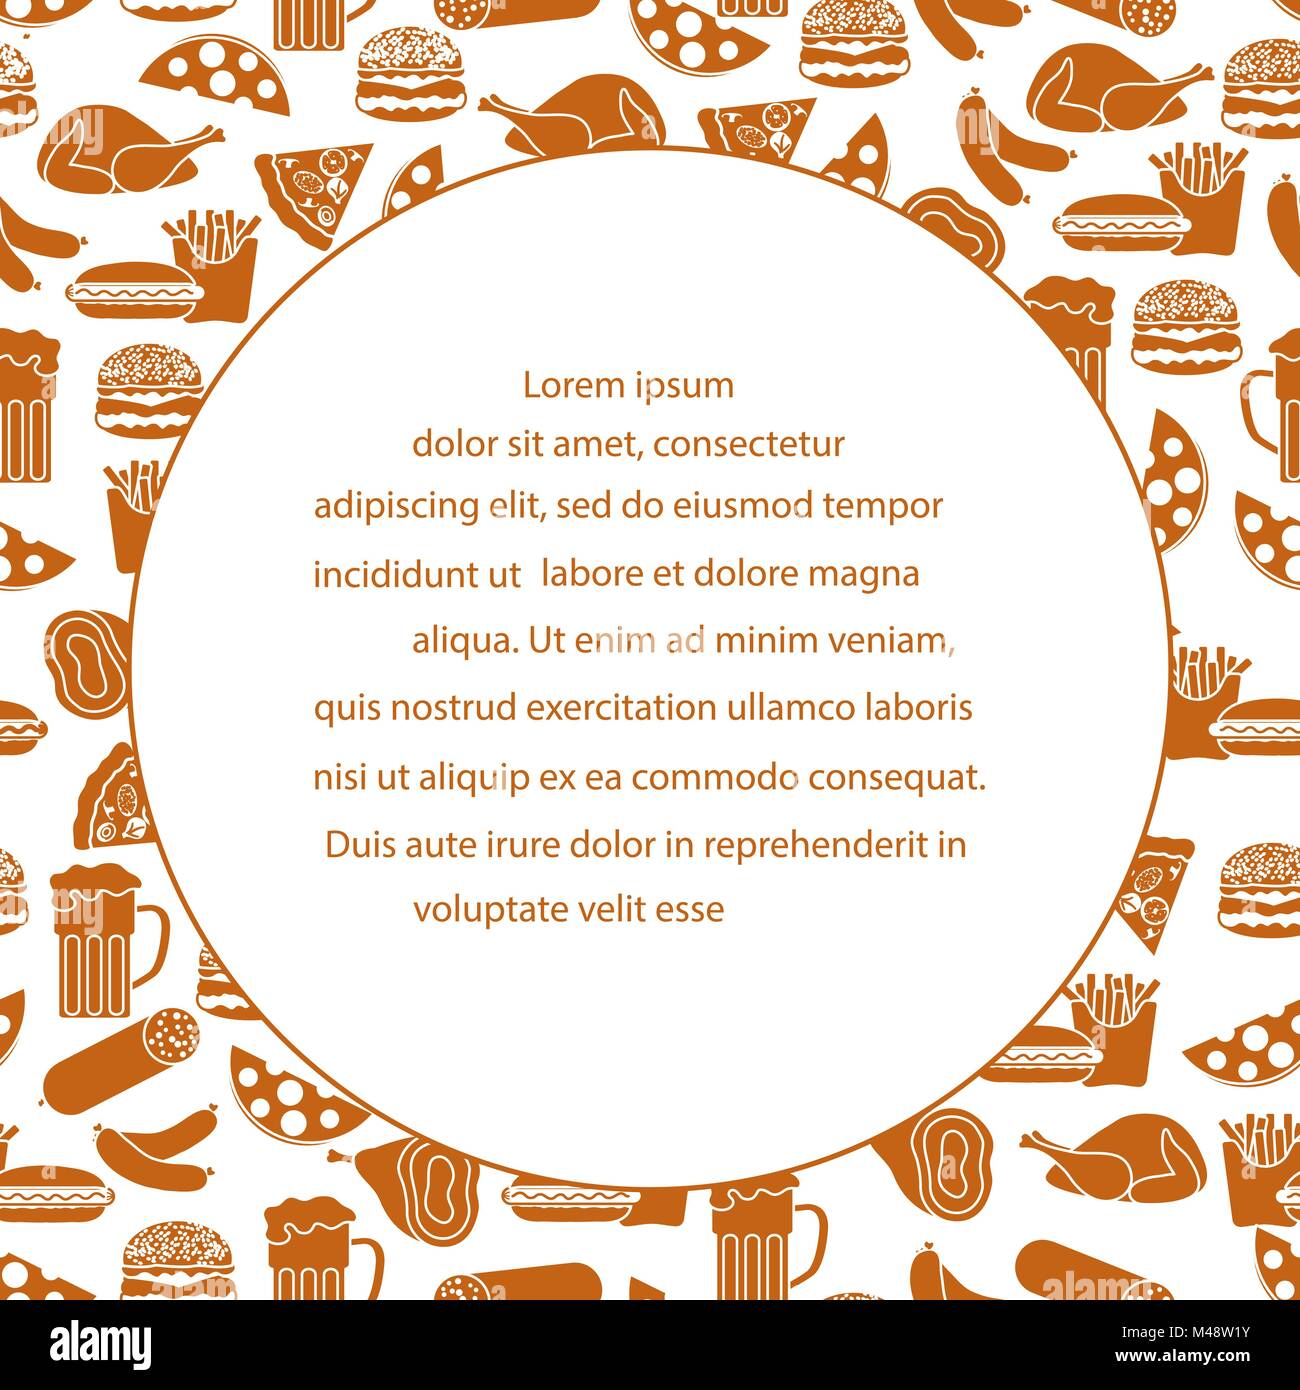 beer different types of food and fast food design for banner and